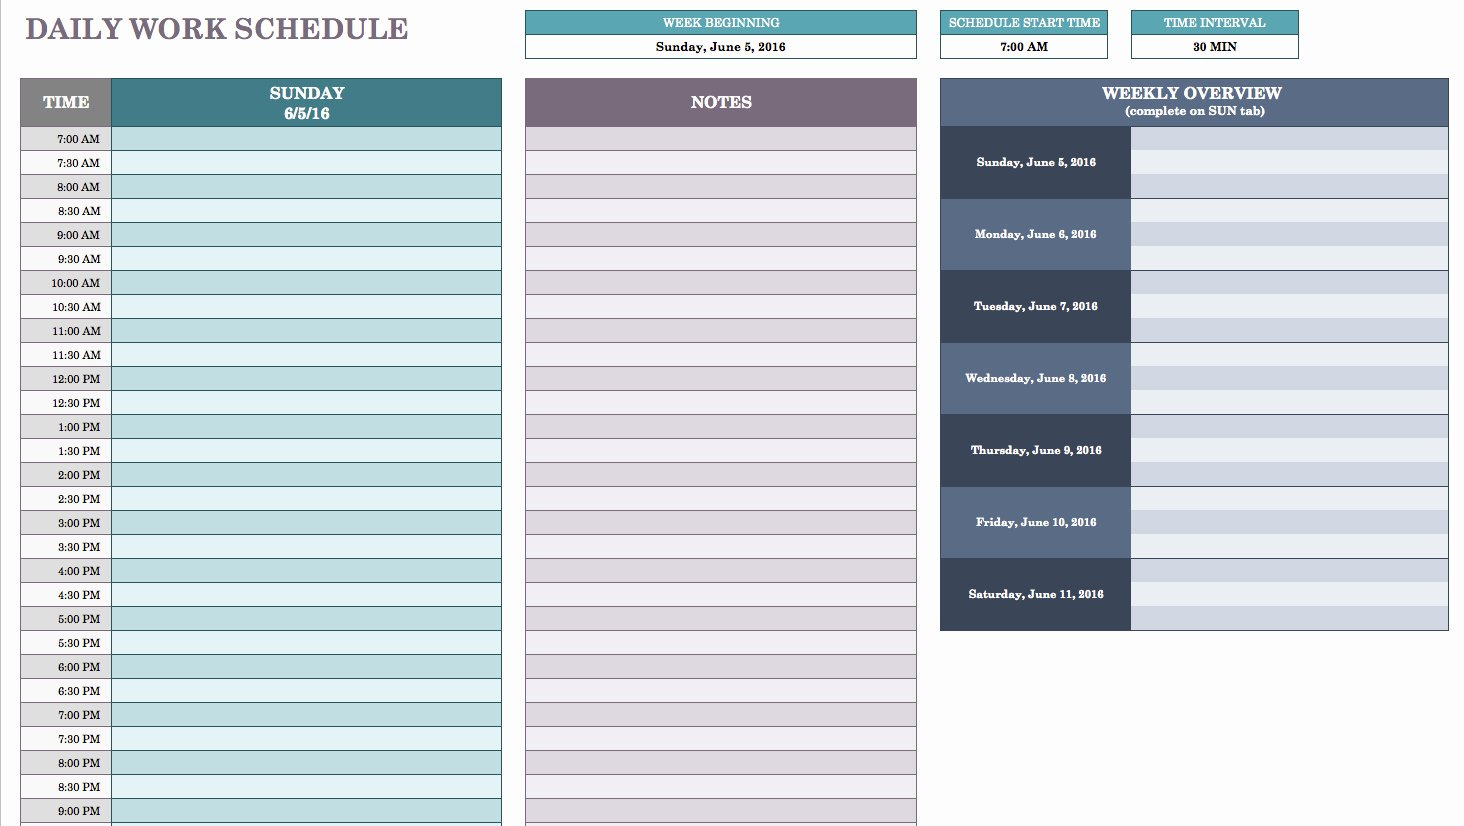 Daily Work Schedule Template Best Of Daily Work Schedule Template